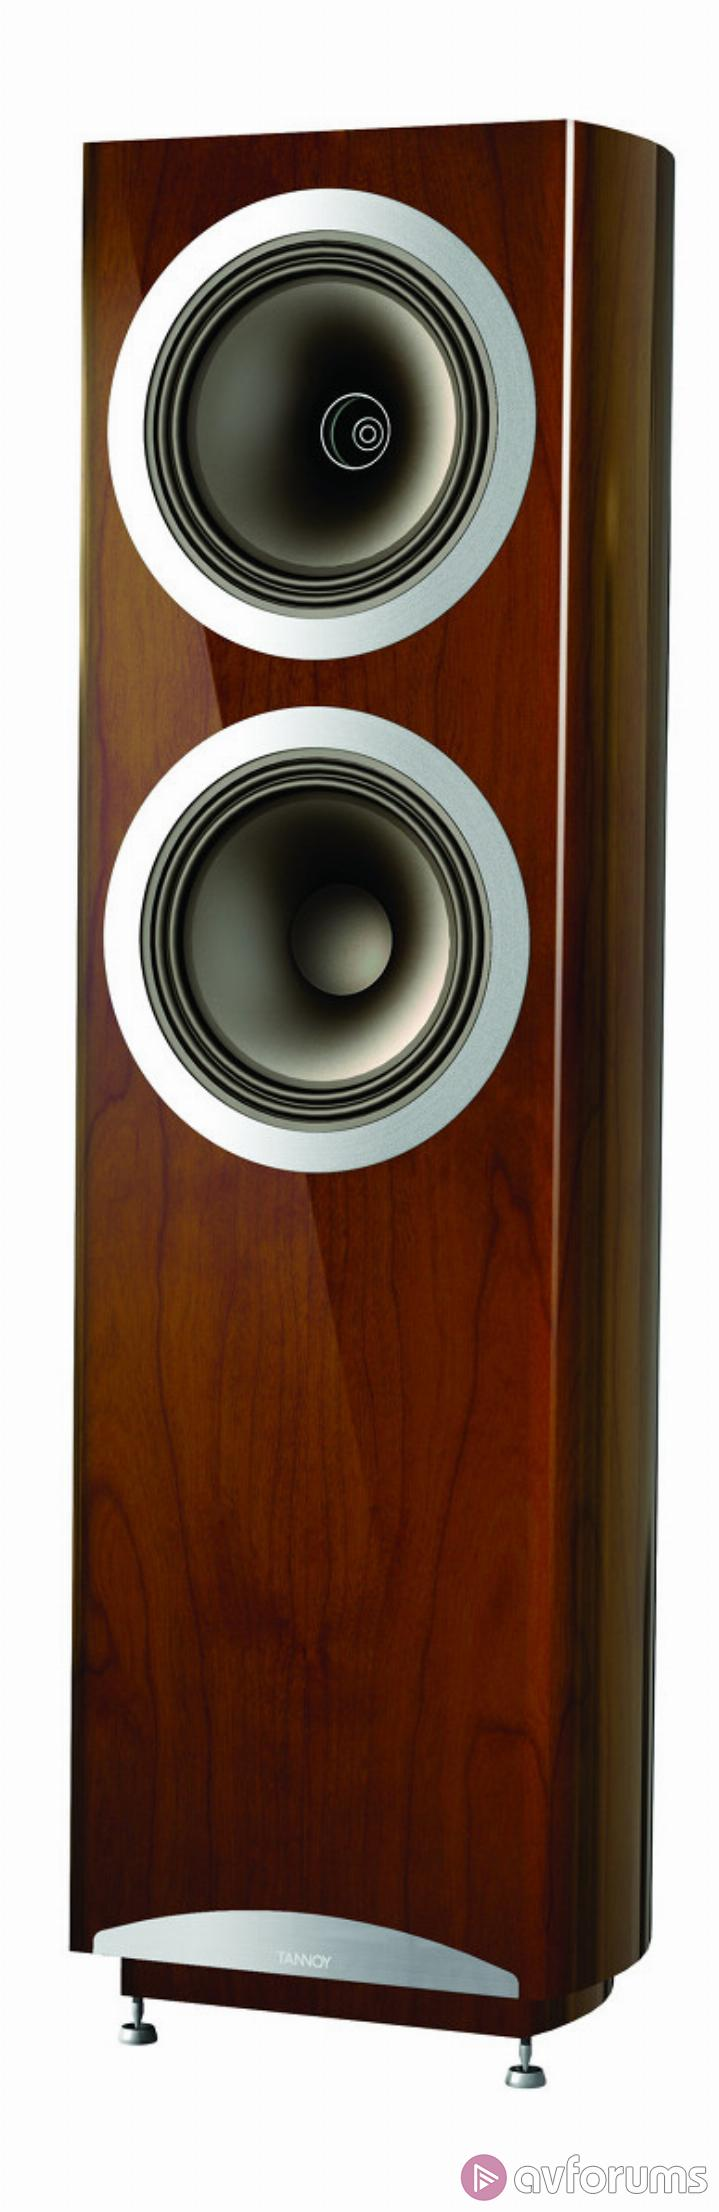 Tannoy Definition DC10T, DC8T & DC6 LCR